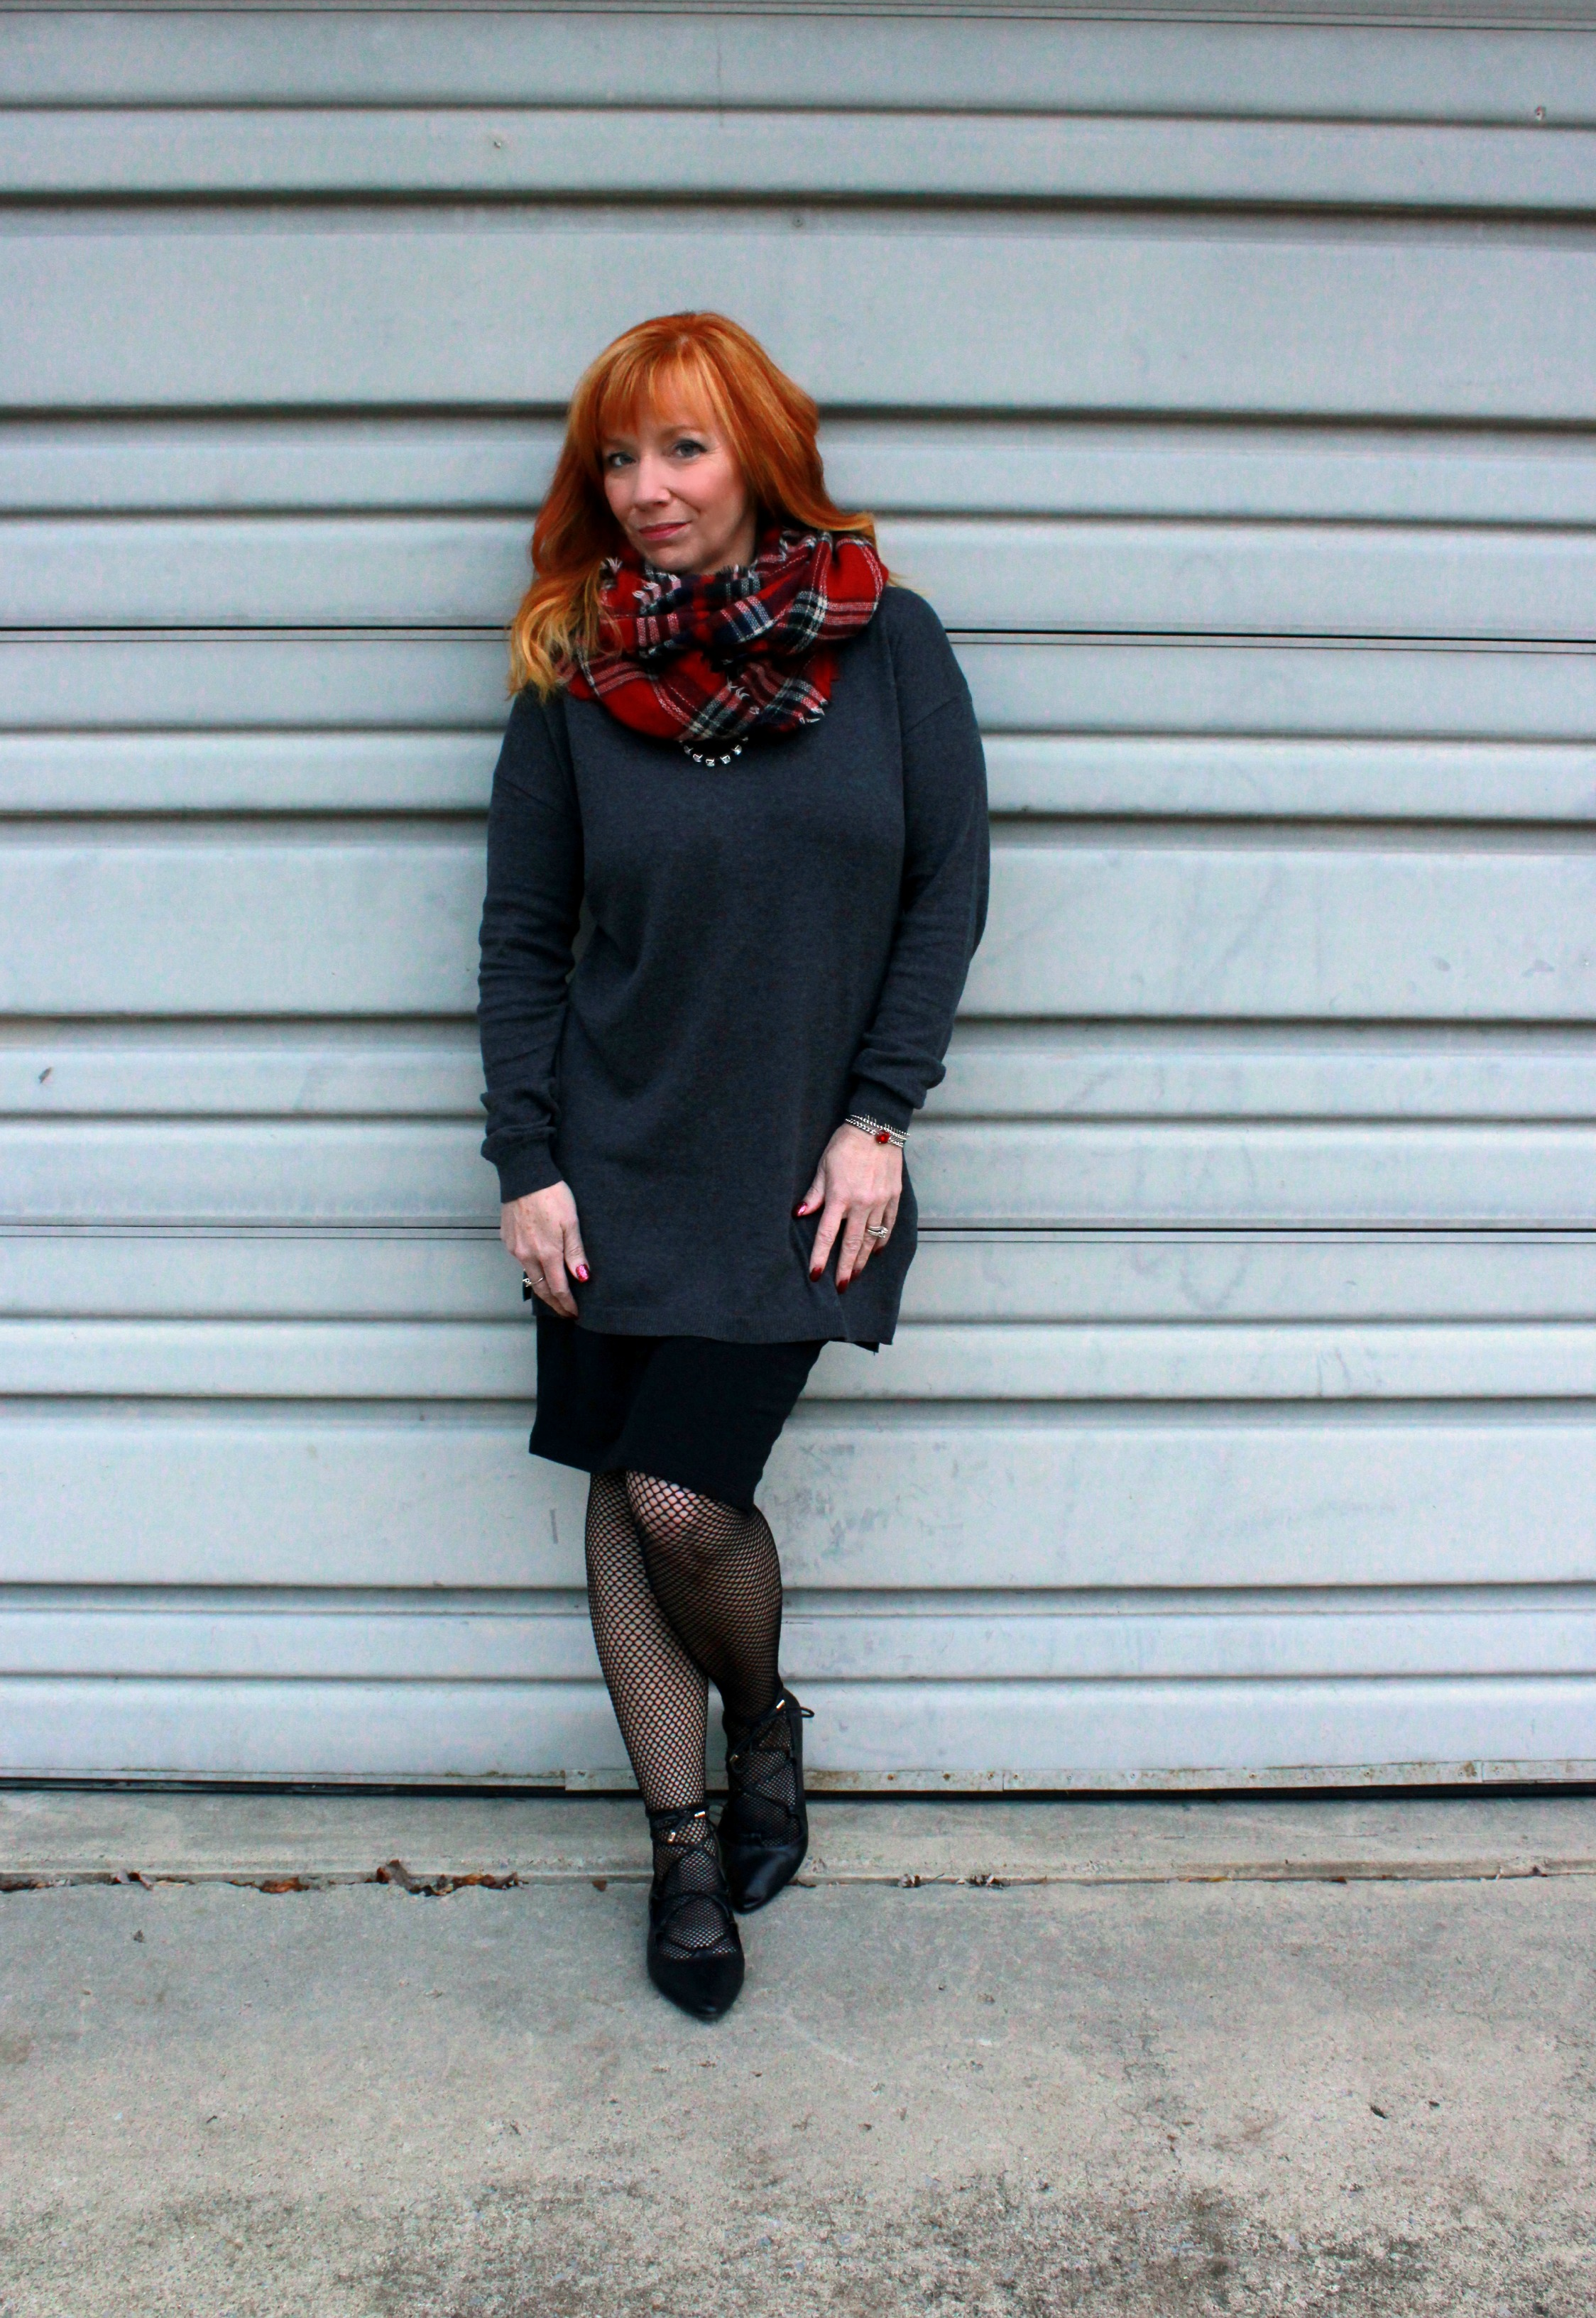 Lace Up Flats & Kushyfoot Fishnet Tights: Where Does The Time Go ...